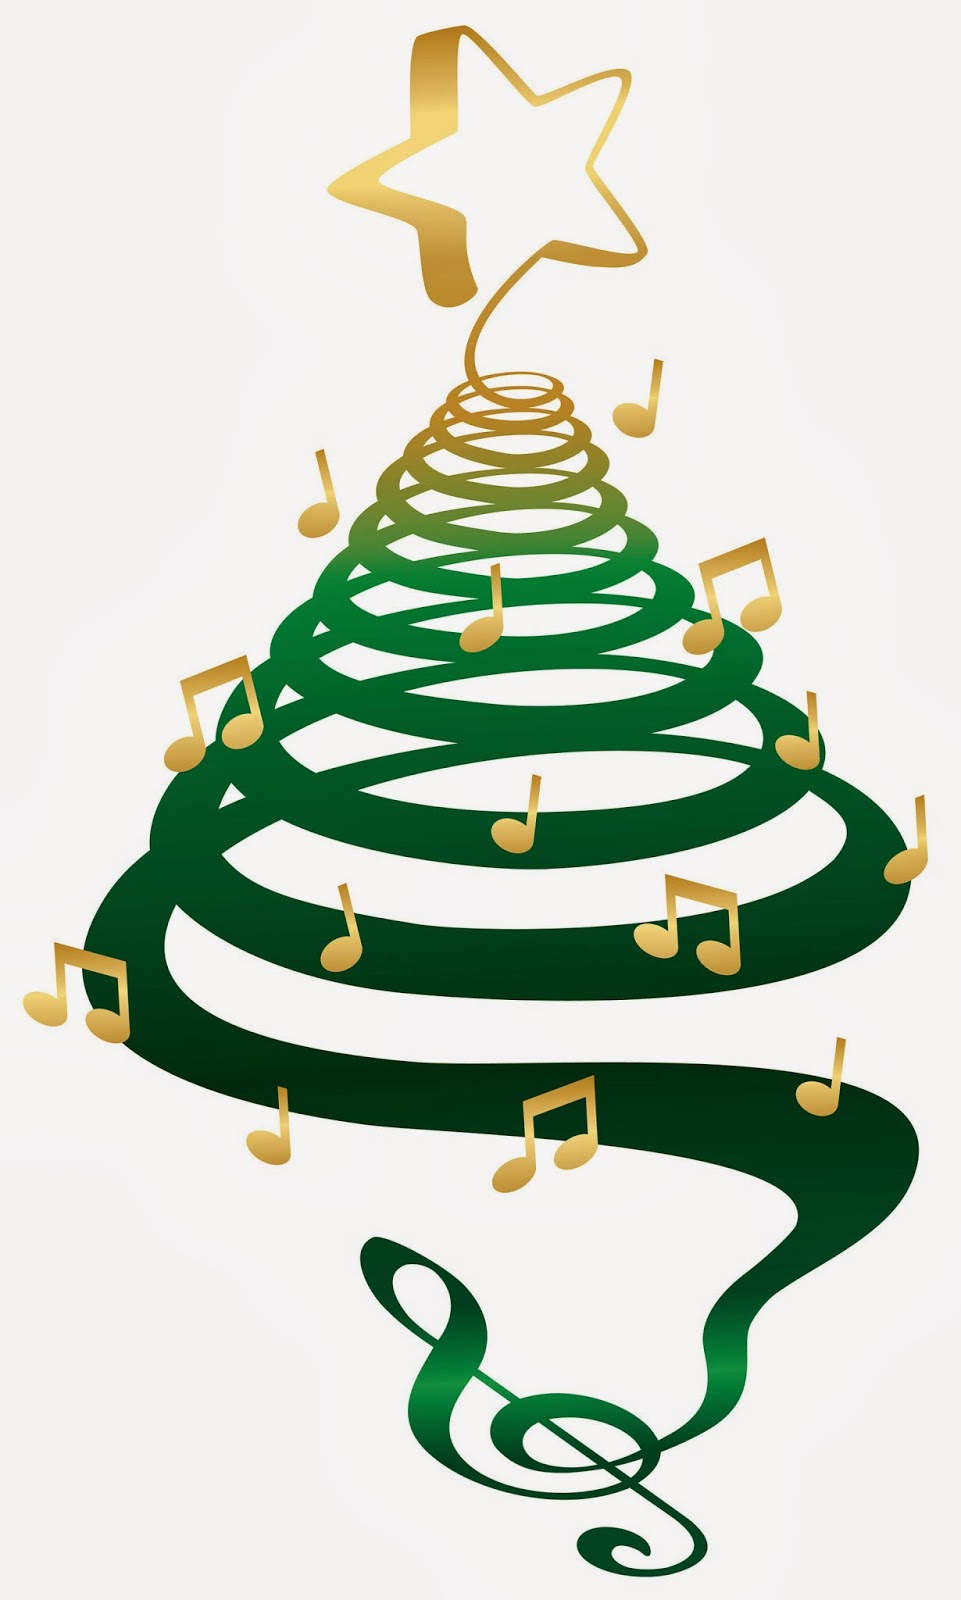 961x1600 Christmas Music Notes Clipart Collection Tree 1015 1300 Border